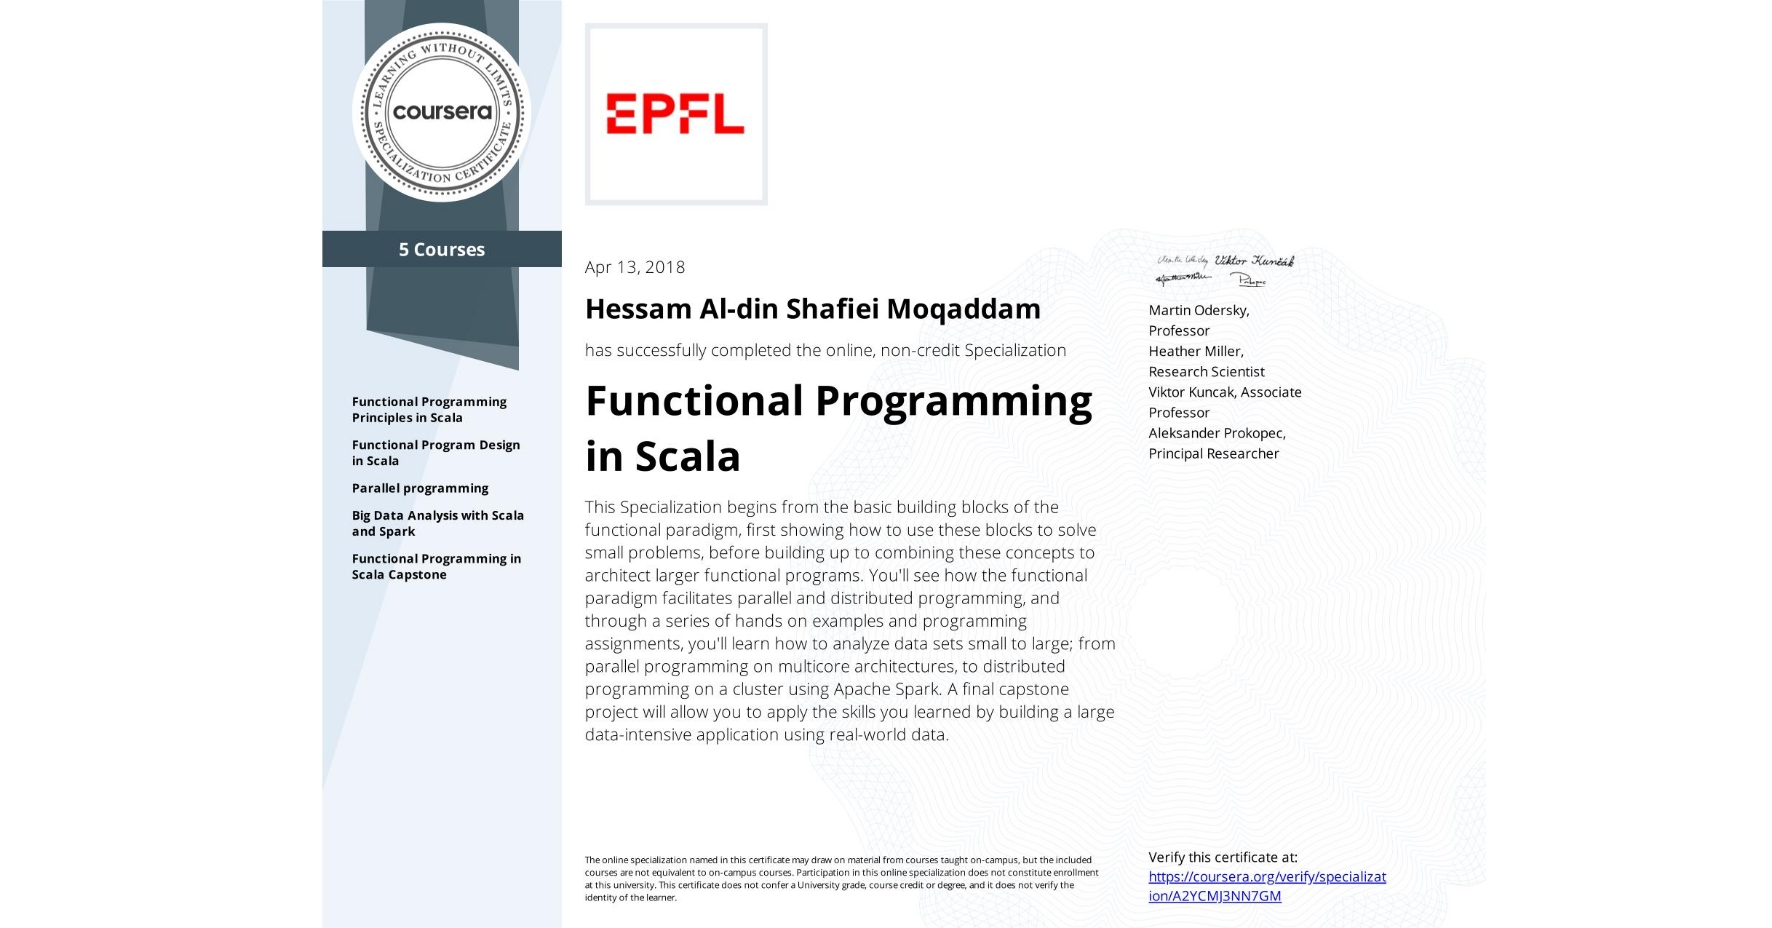 View certificate for Hessam Al-din  Shafiei Moqaddam, Functional Programming in Scala, offered through Coursera. This Specialization begins from the basic building blocks of the functional paradigm, first showing how to use these blocks to solve small problems, before building up to combining these concepts to architect larger functional programs. You'll see how the functional paradigm facilitates parallel and distributed programming, and through a series of hands on examples and programming assignments, you'll learn how to analyze data sets small to large; from parallel programming on multicore architectures, to distributed programming on a cluster using Apache Spark. A final capstone project will allow you to apply the skills you learned by building a large data-intensive application using real-world data.